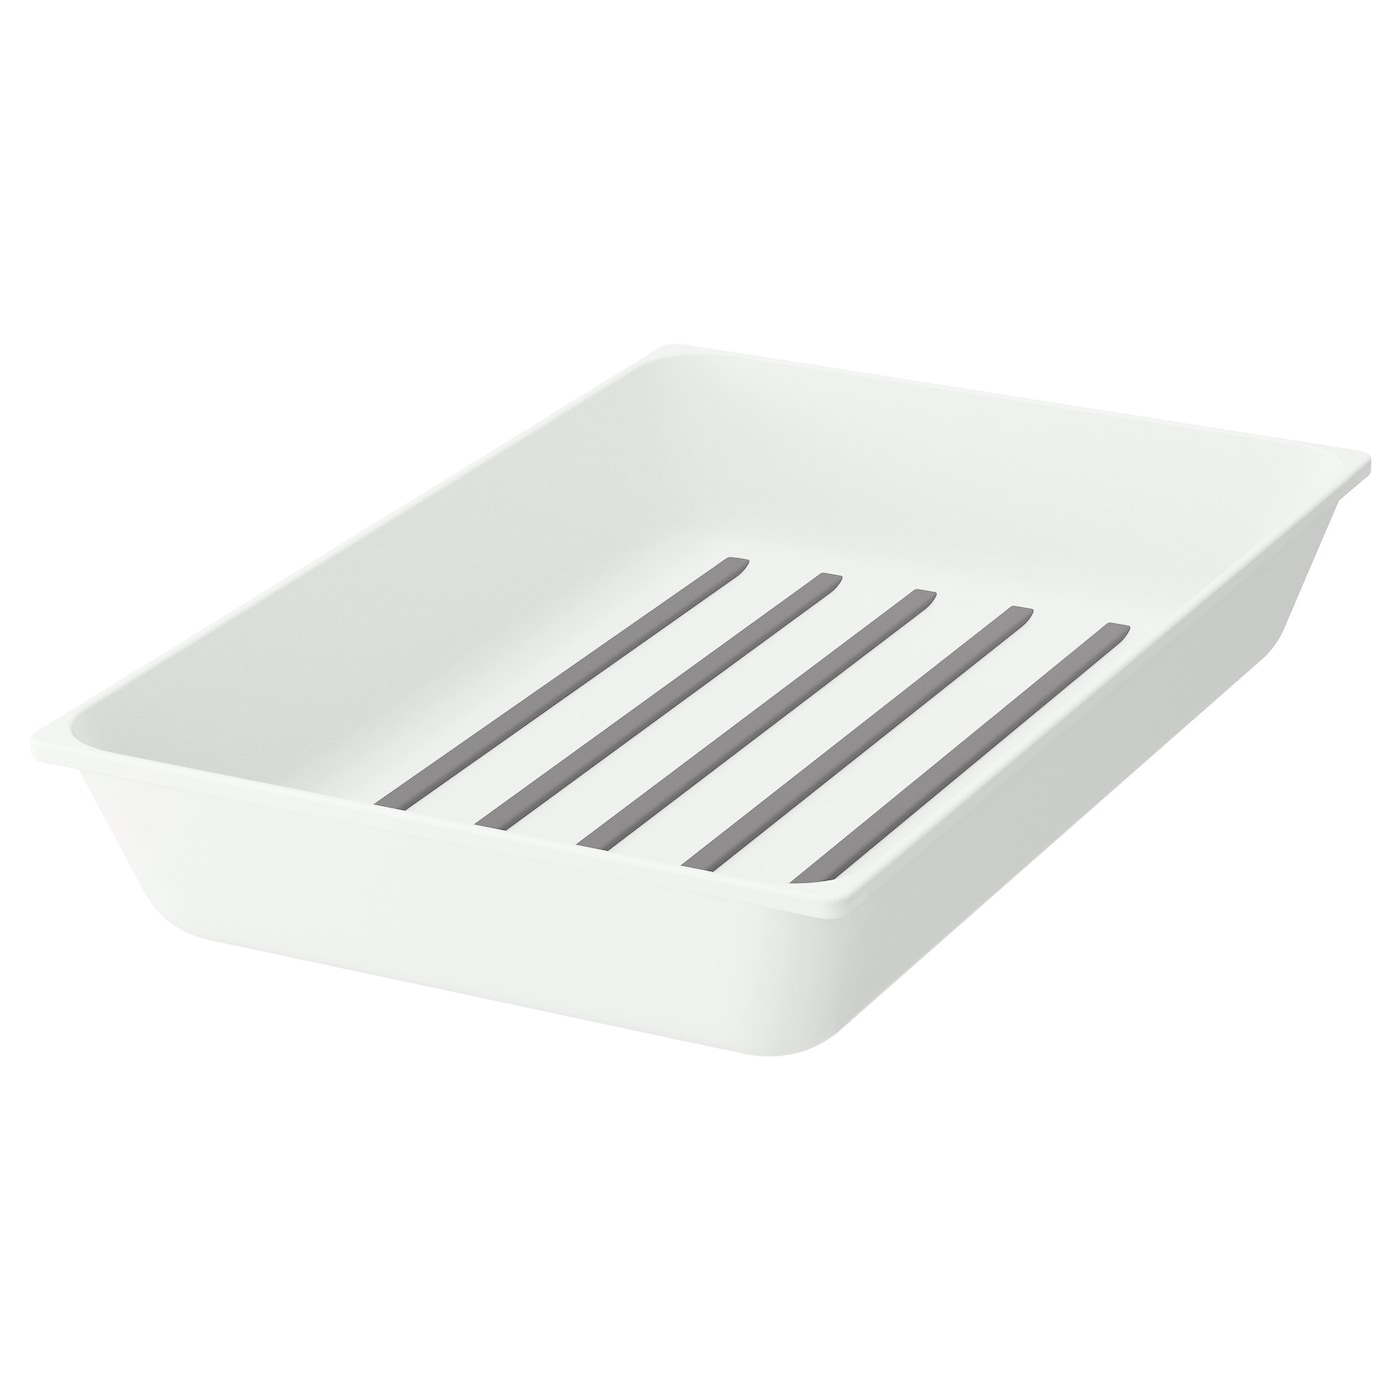 IKEA VARIERA utensil tray Makes it easier to organise and find what you need in the drawer.